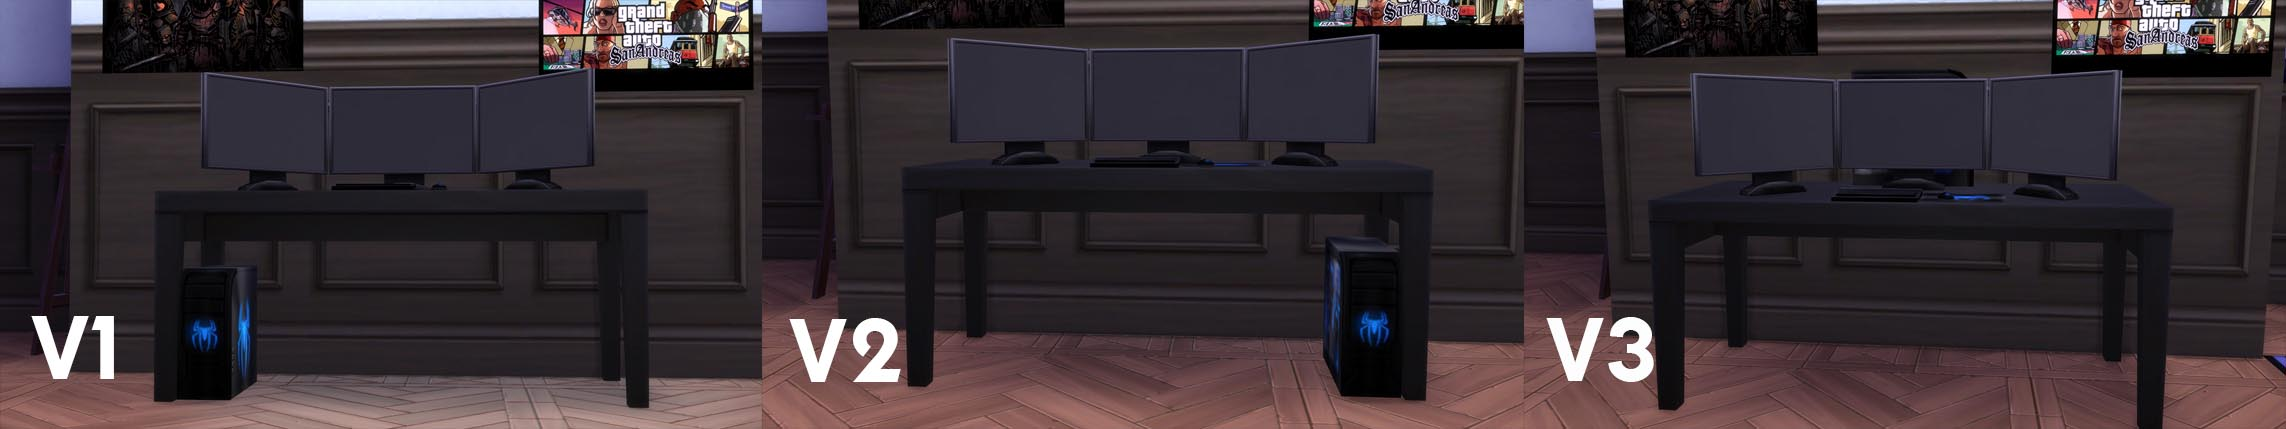 Mod The Sims Spiderweb Hardcore Gaming Set Added More Swatches 1 Komputer X